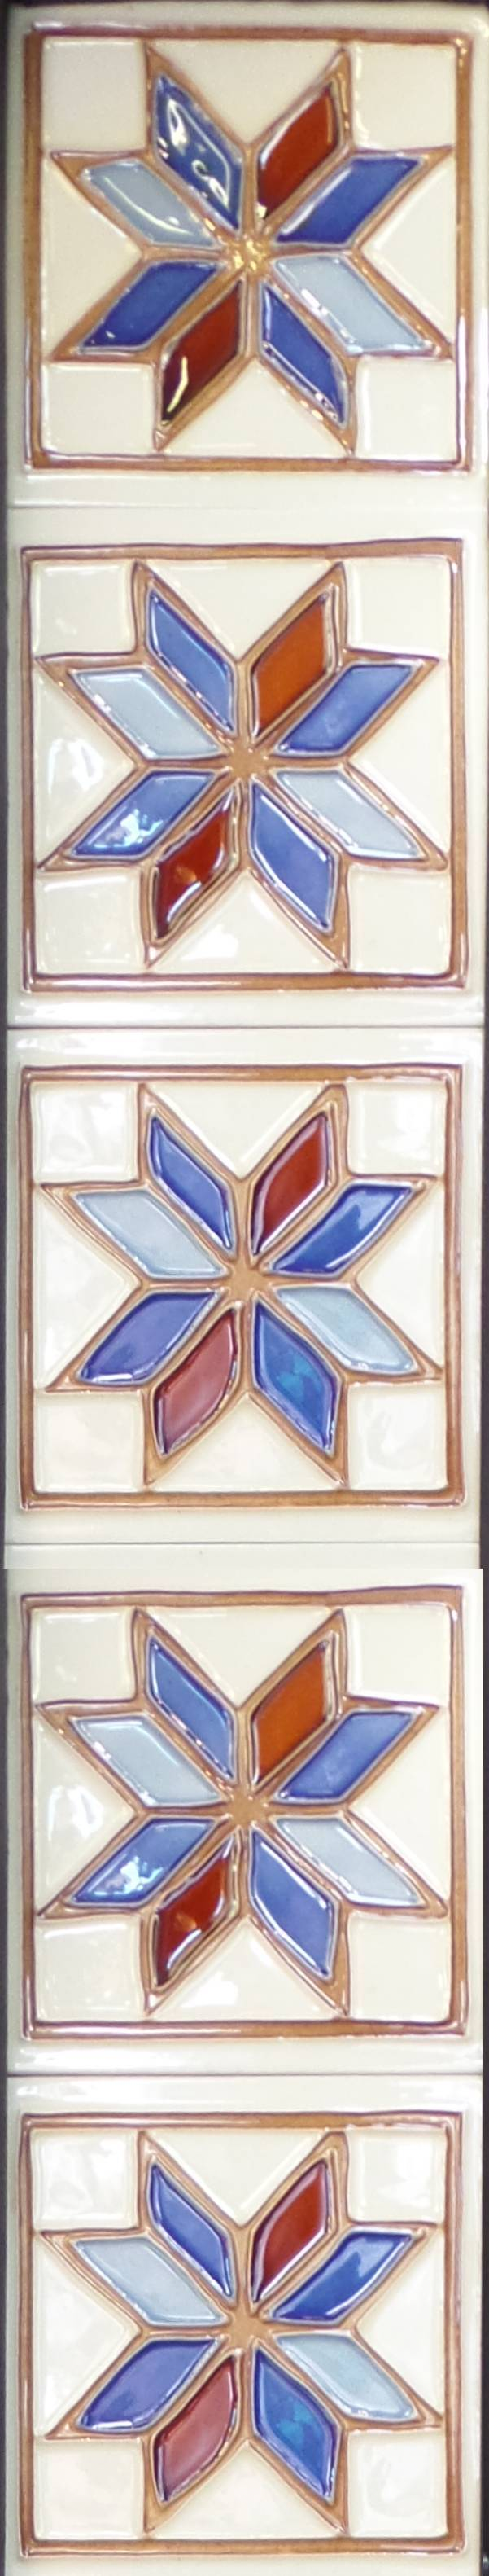 Reproduction Star Retro Tile Set.